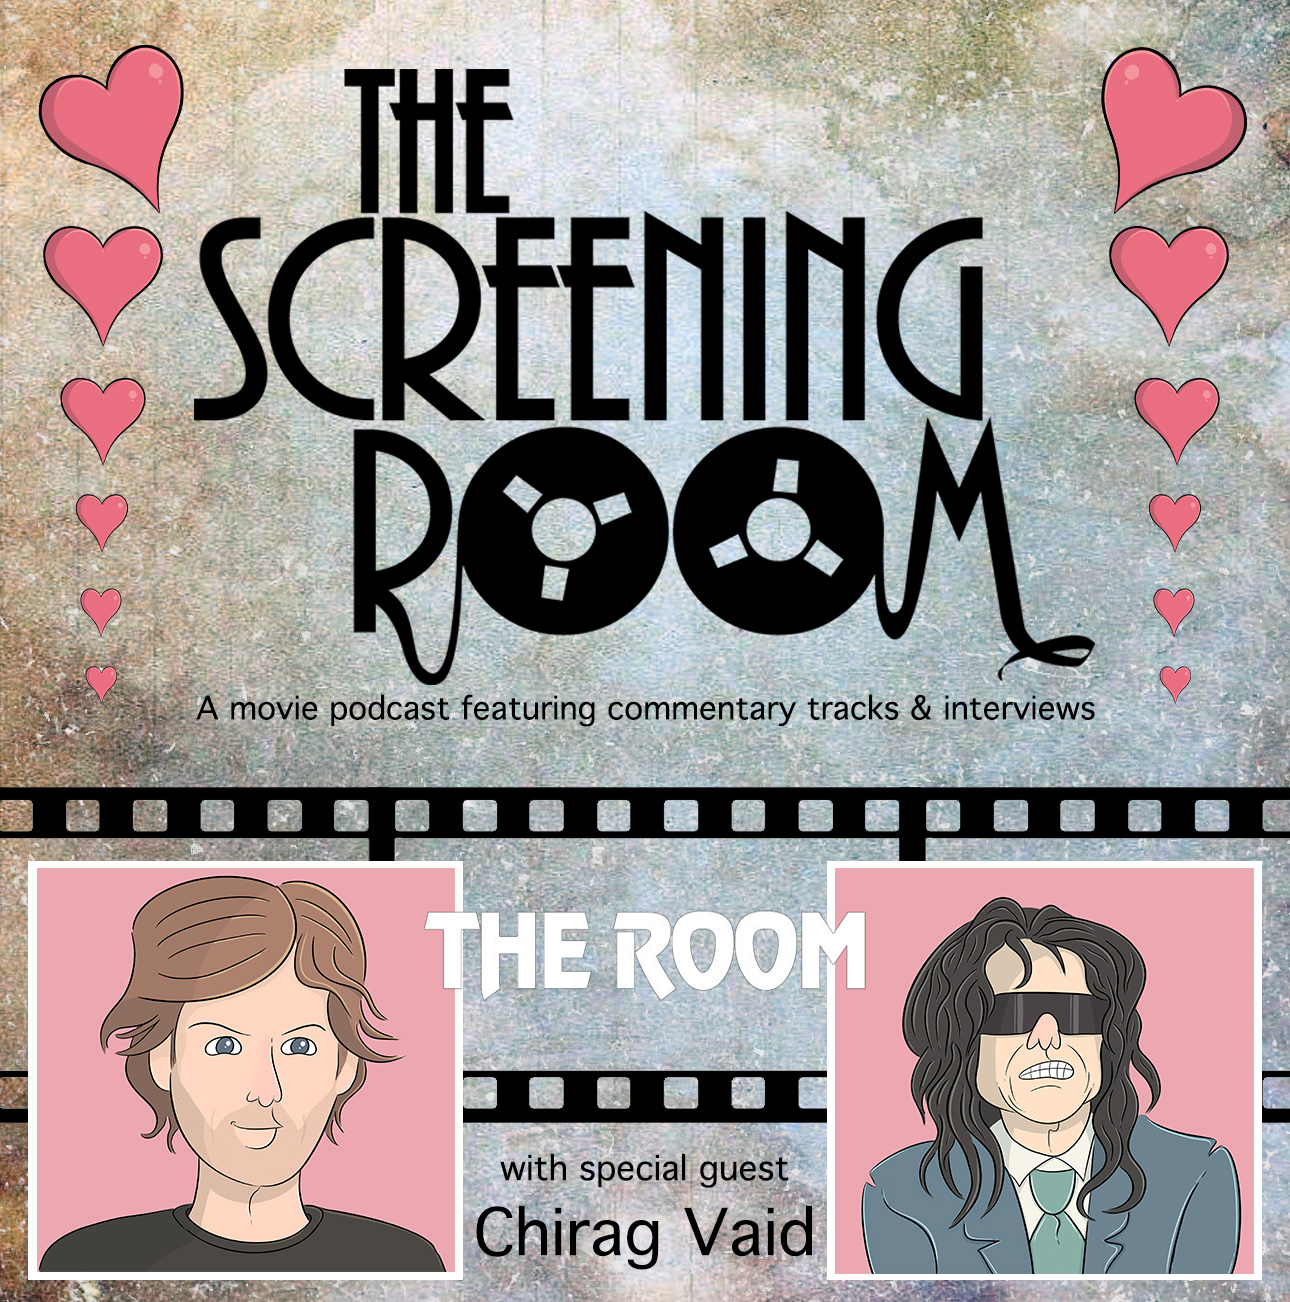 The Screening Room - S2E1 - The Room